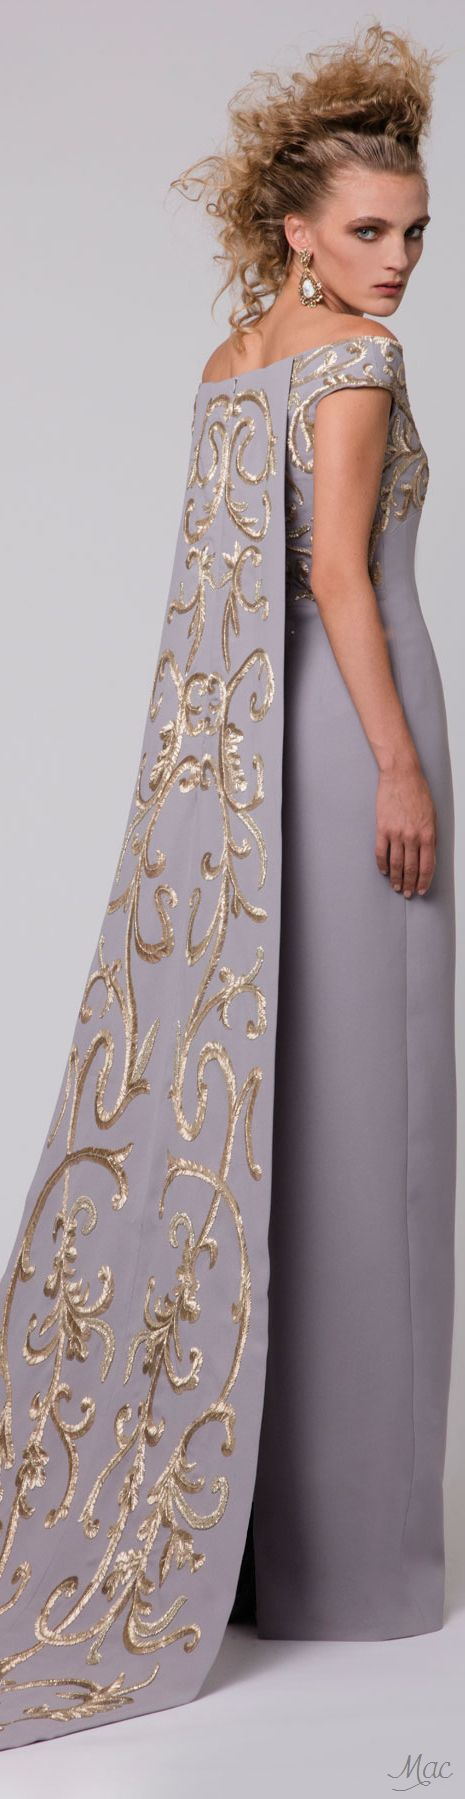 A/W 2016-2017 Haute Couture - Azzi & Osta Promises of Dawn Collection